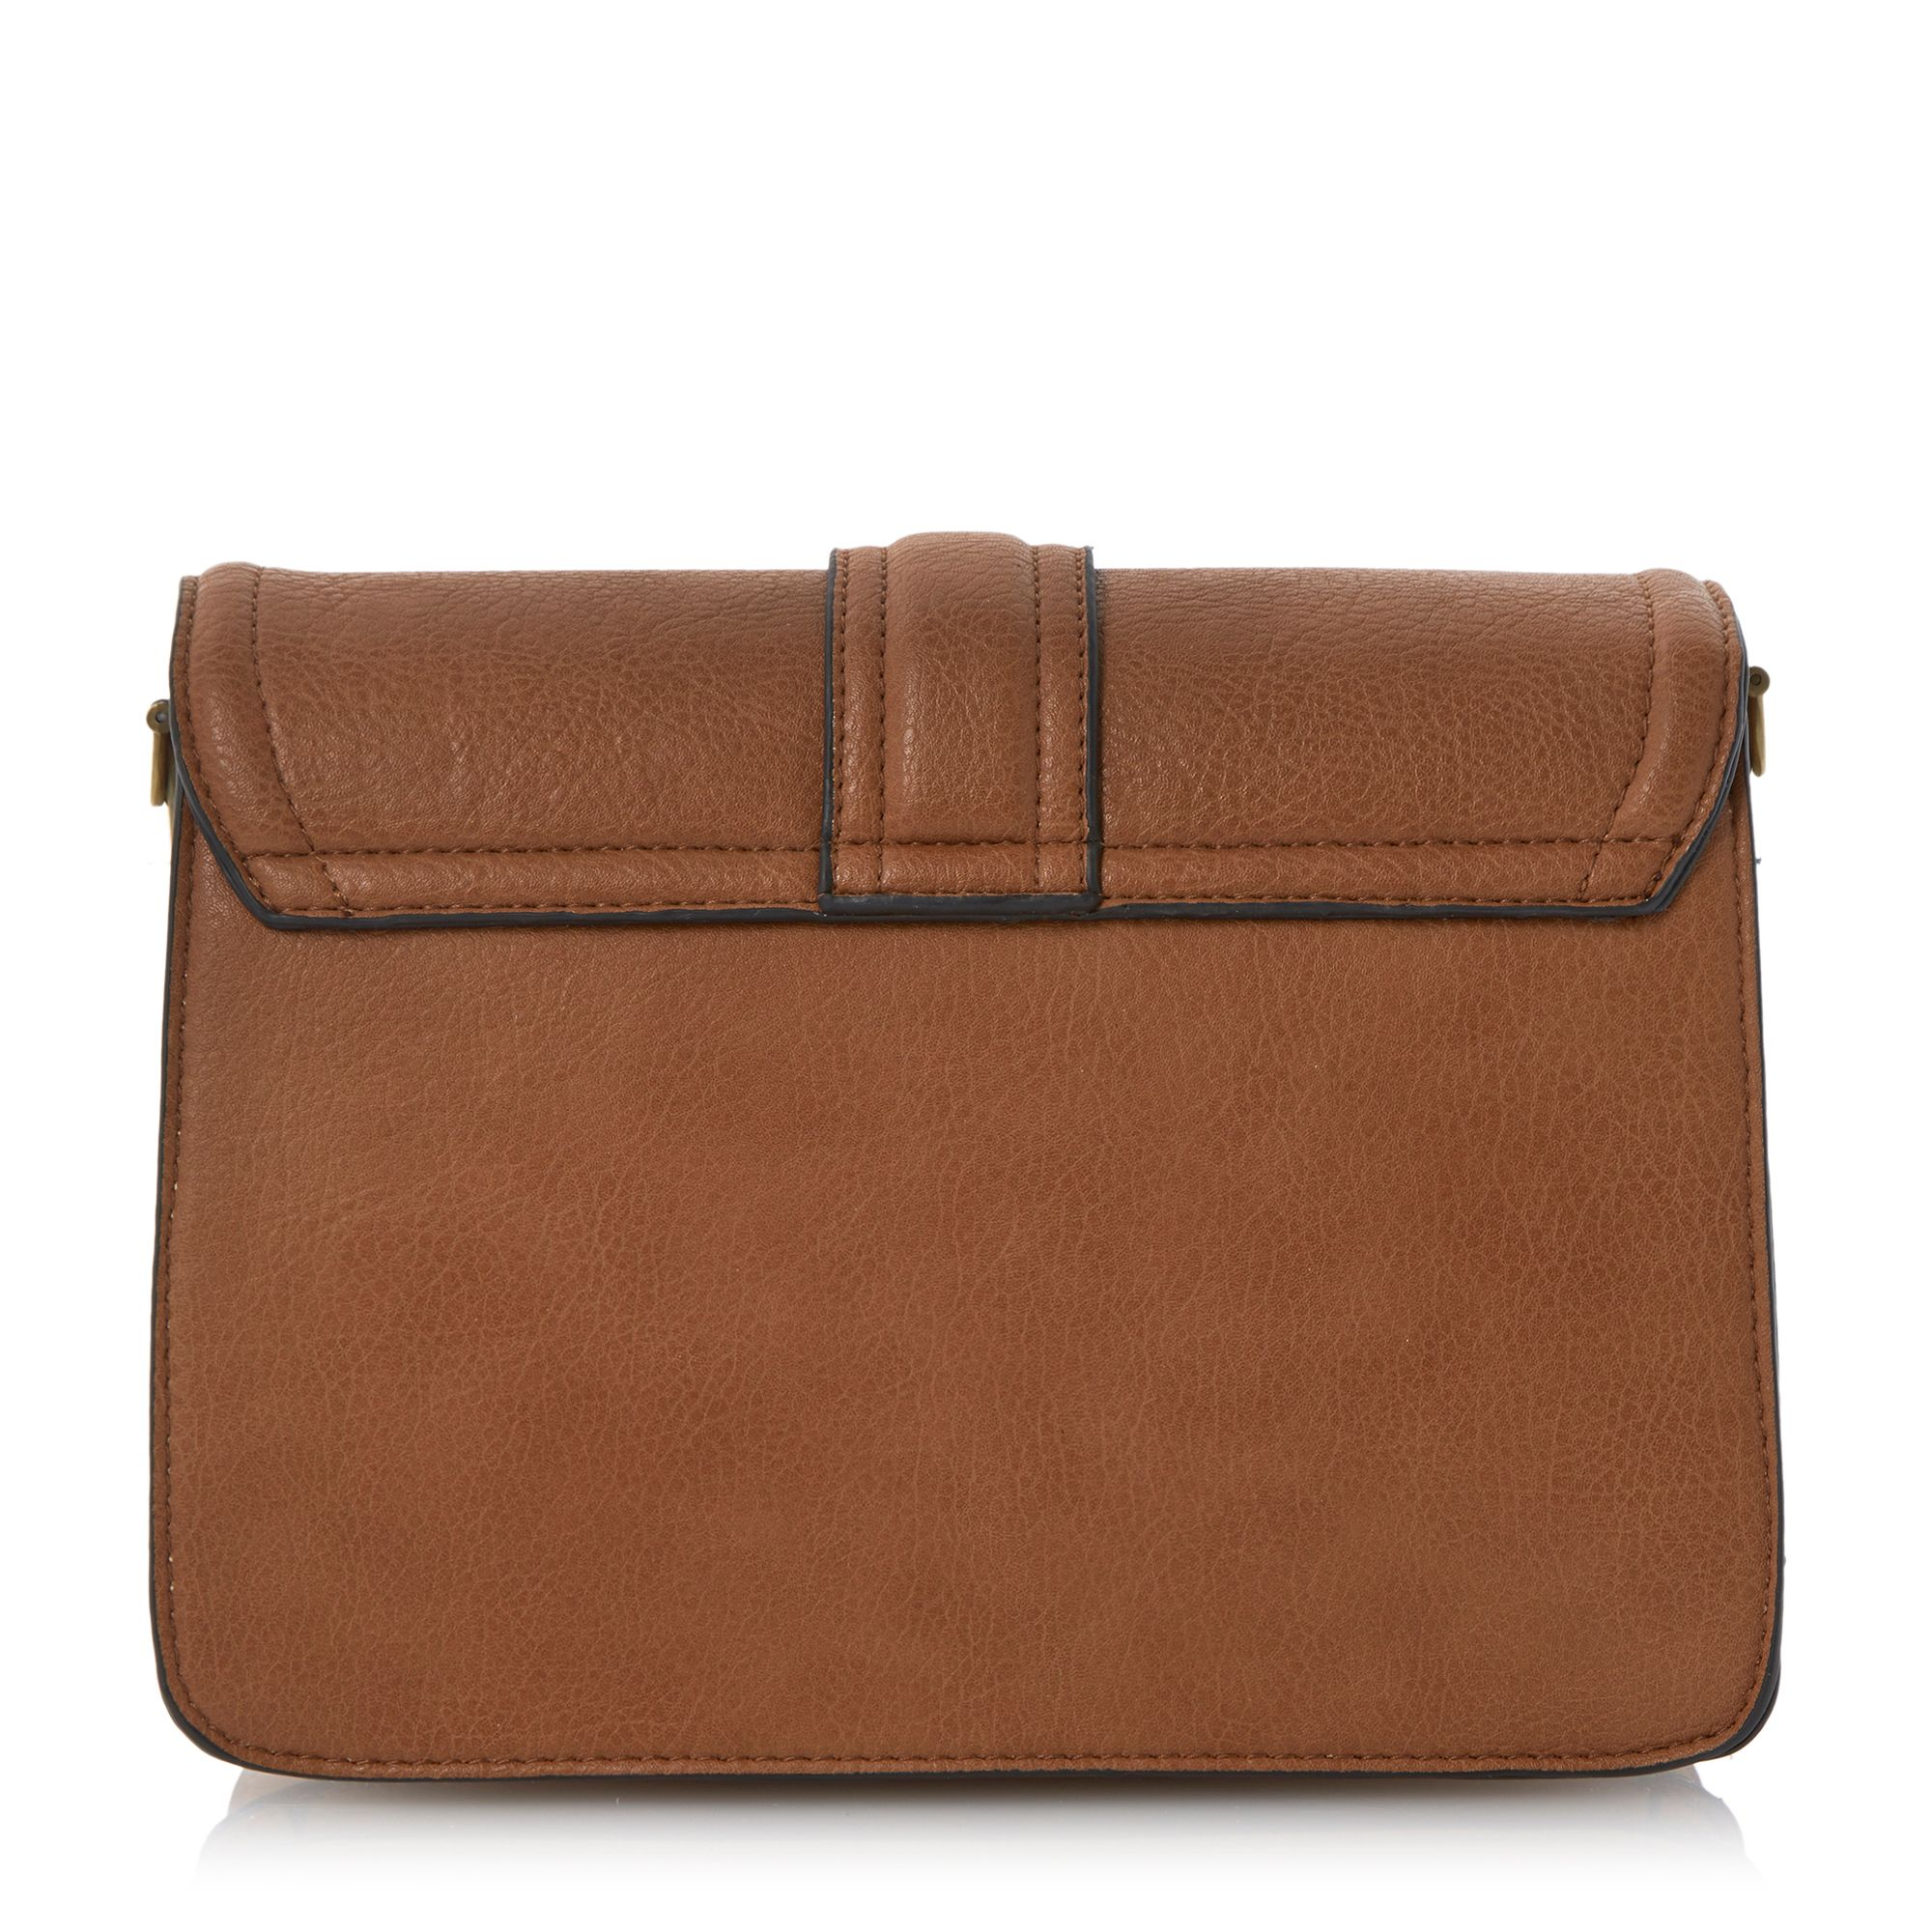 Leighton metal keeper mini xbody bag